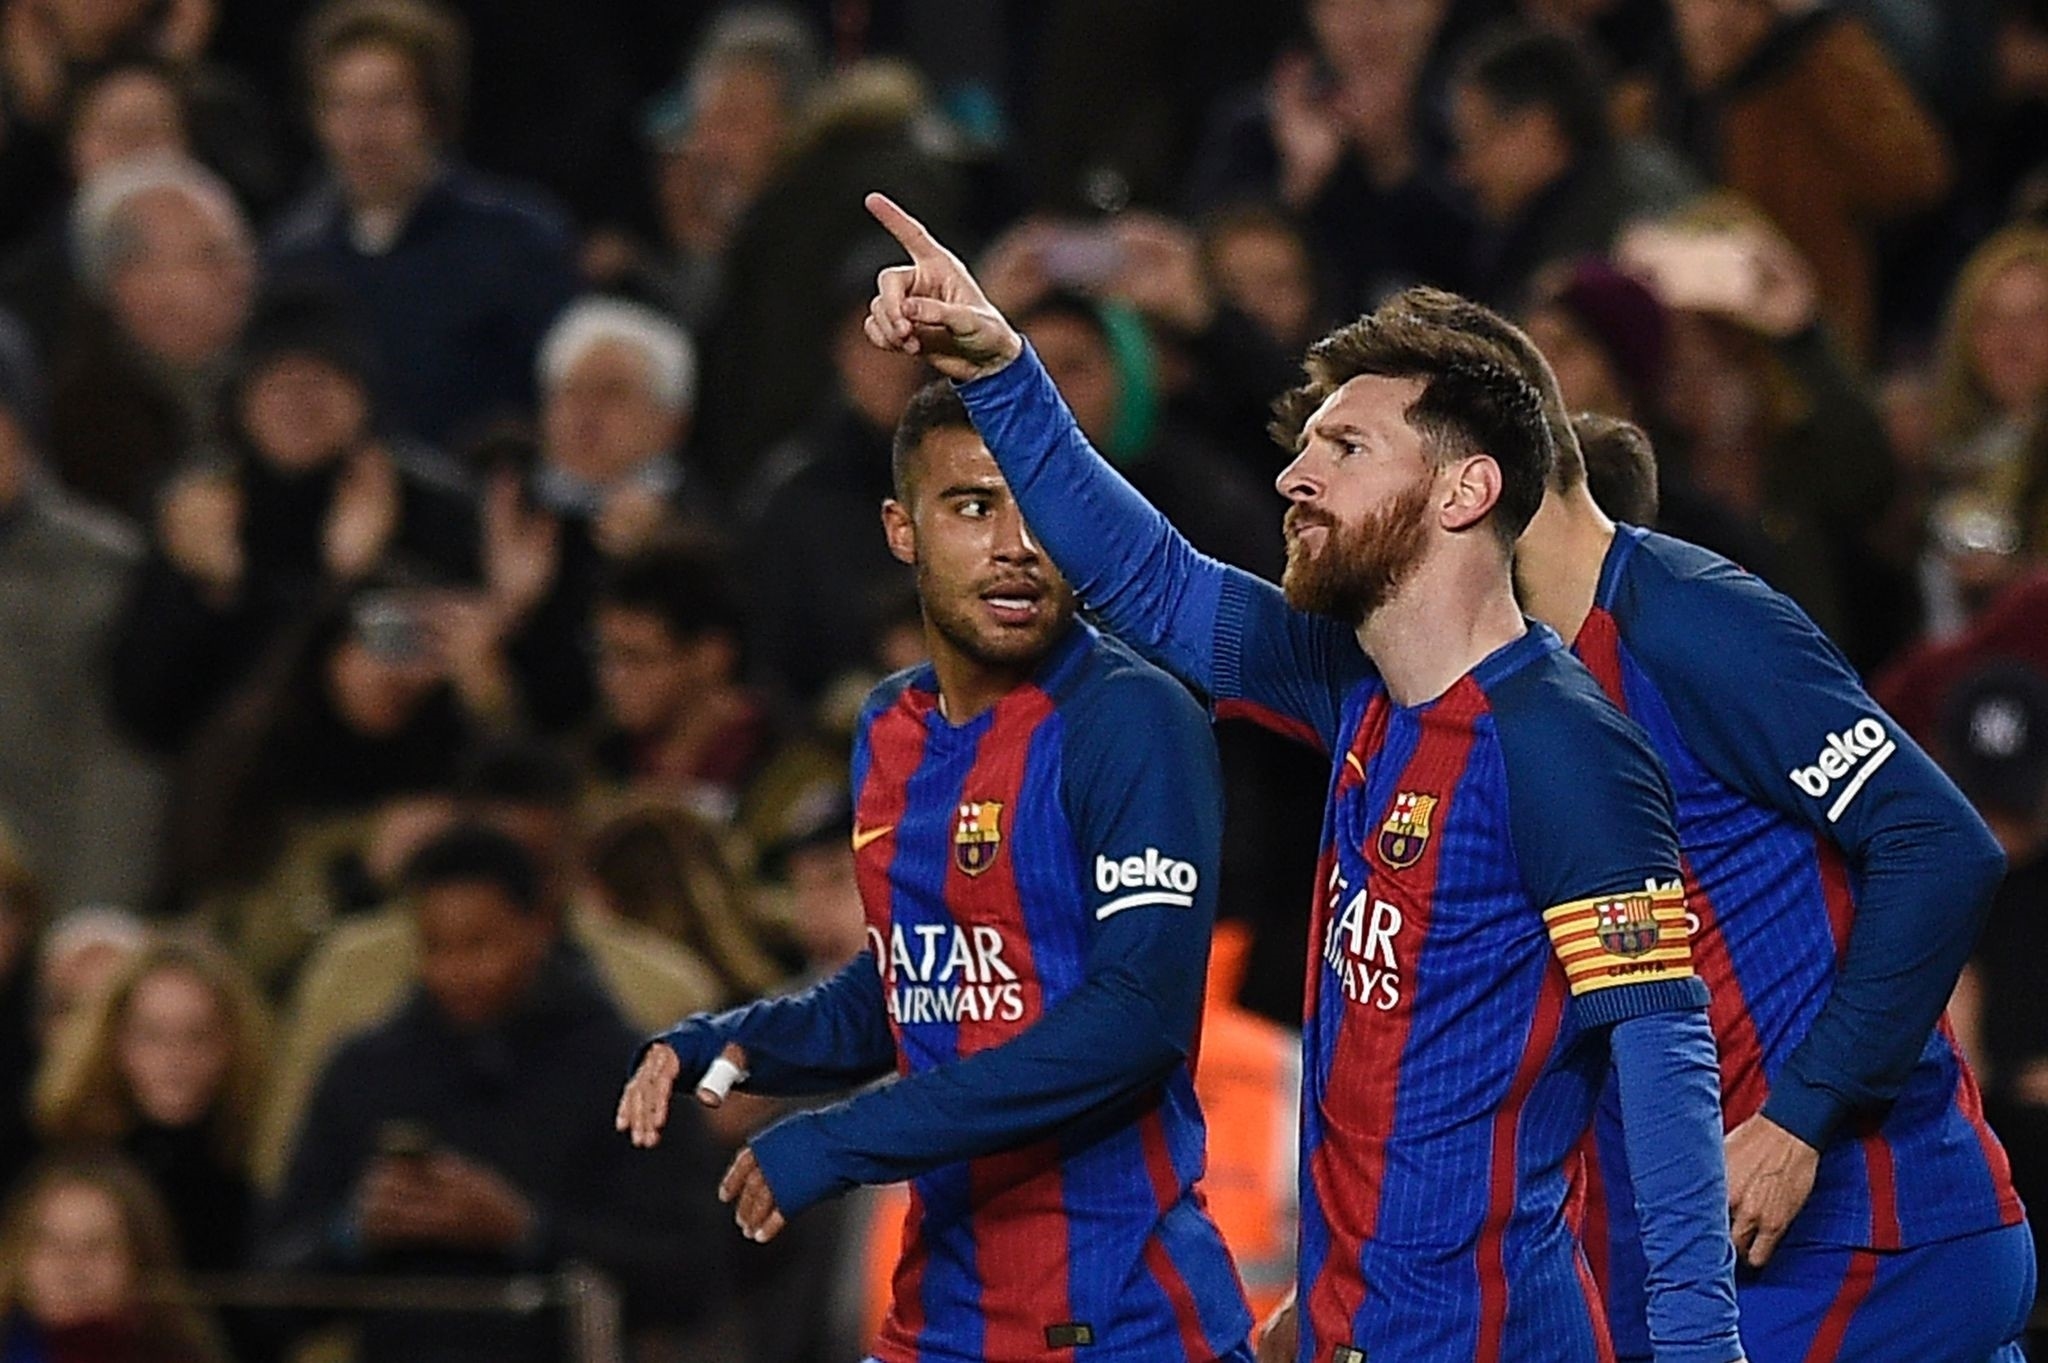 Barcelonau2019s Argentinian forward Lionel Messi celebrates after scoring a goal during the Spanish league football match Barcelona vs Celta Vigo at the Camp Nou stadium.